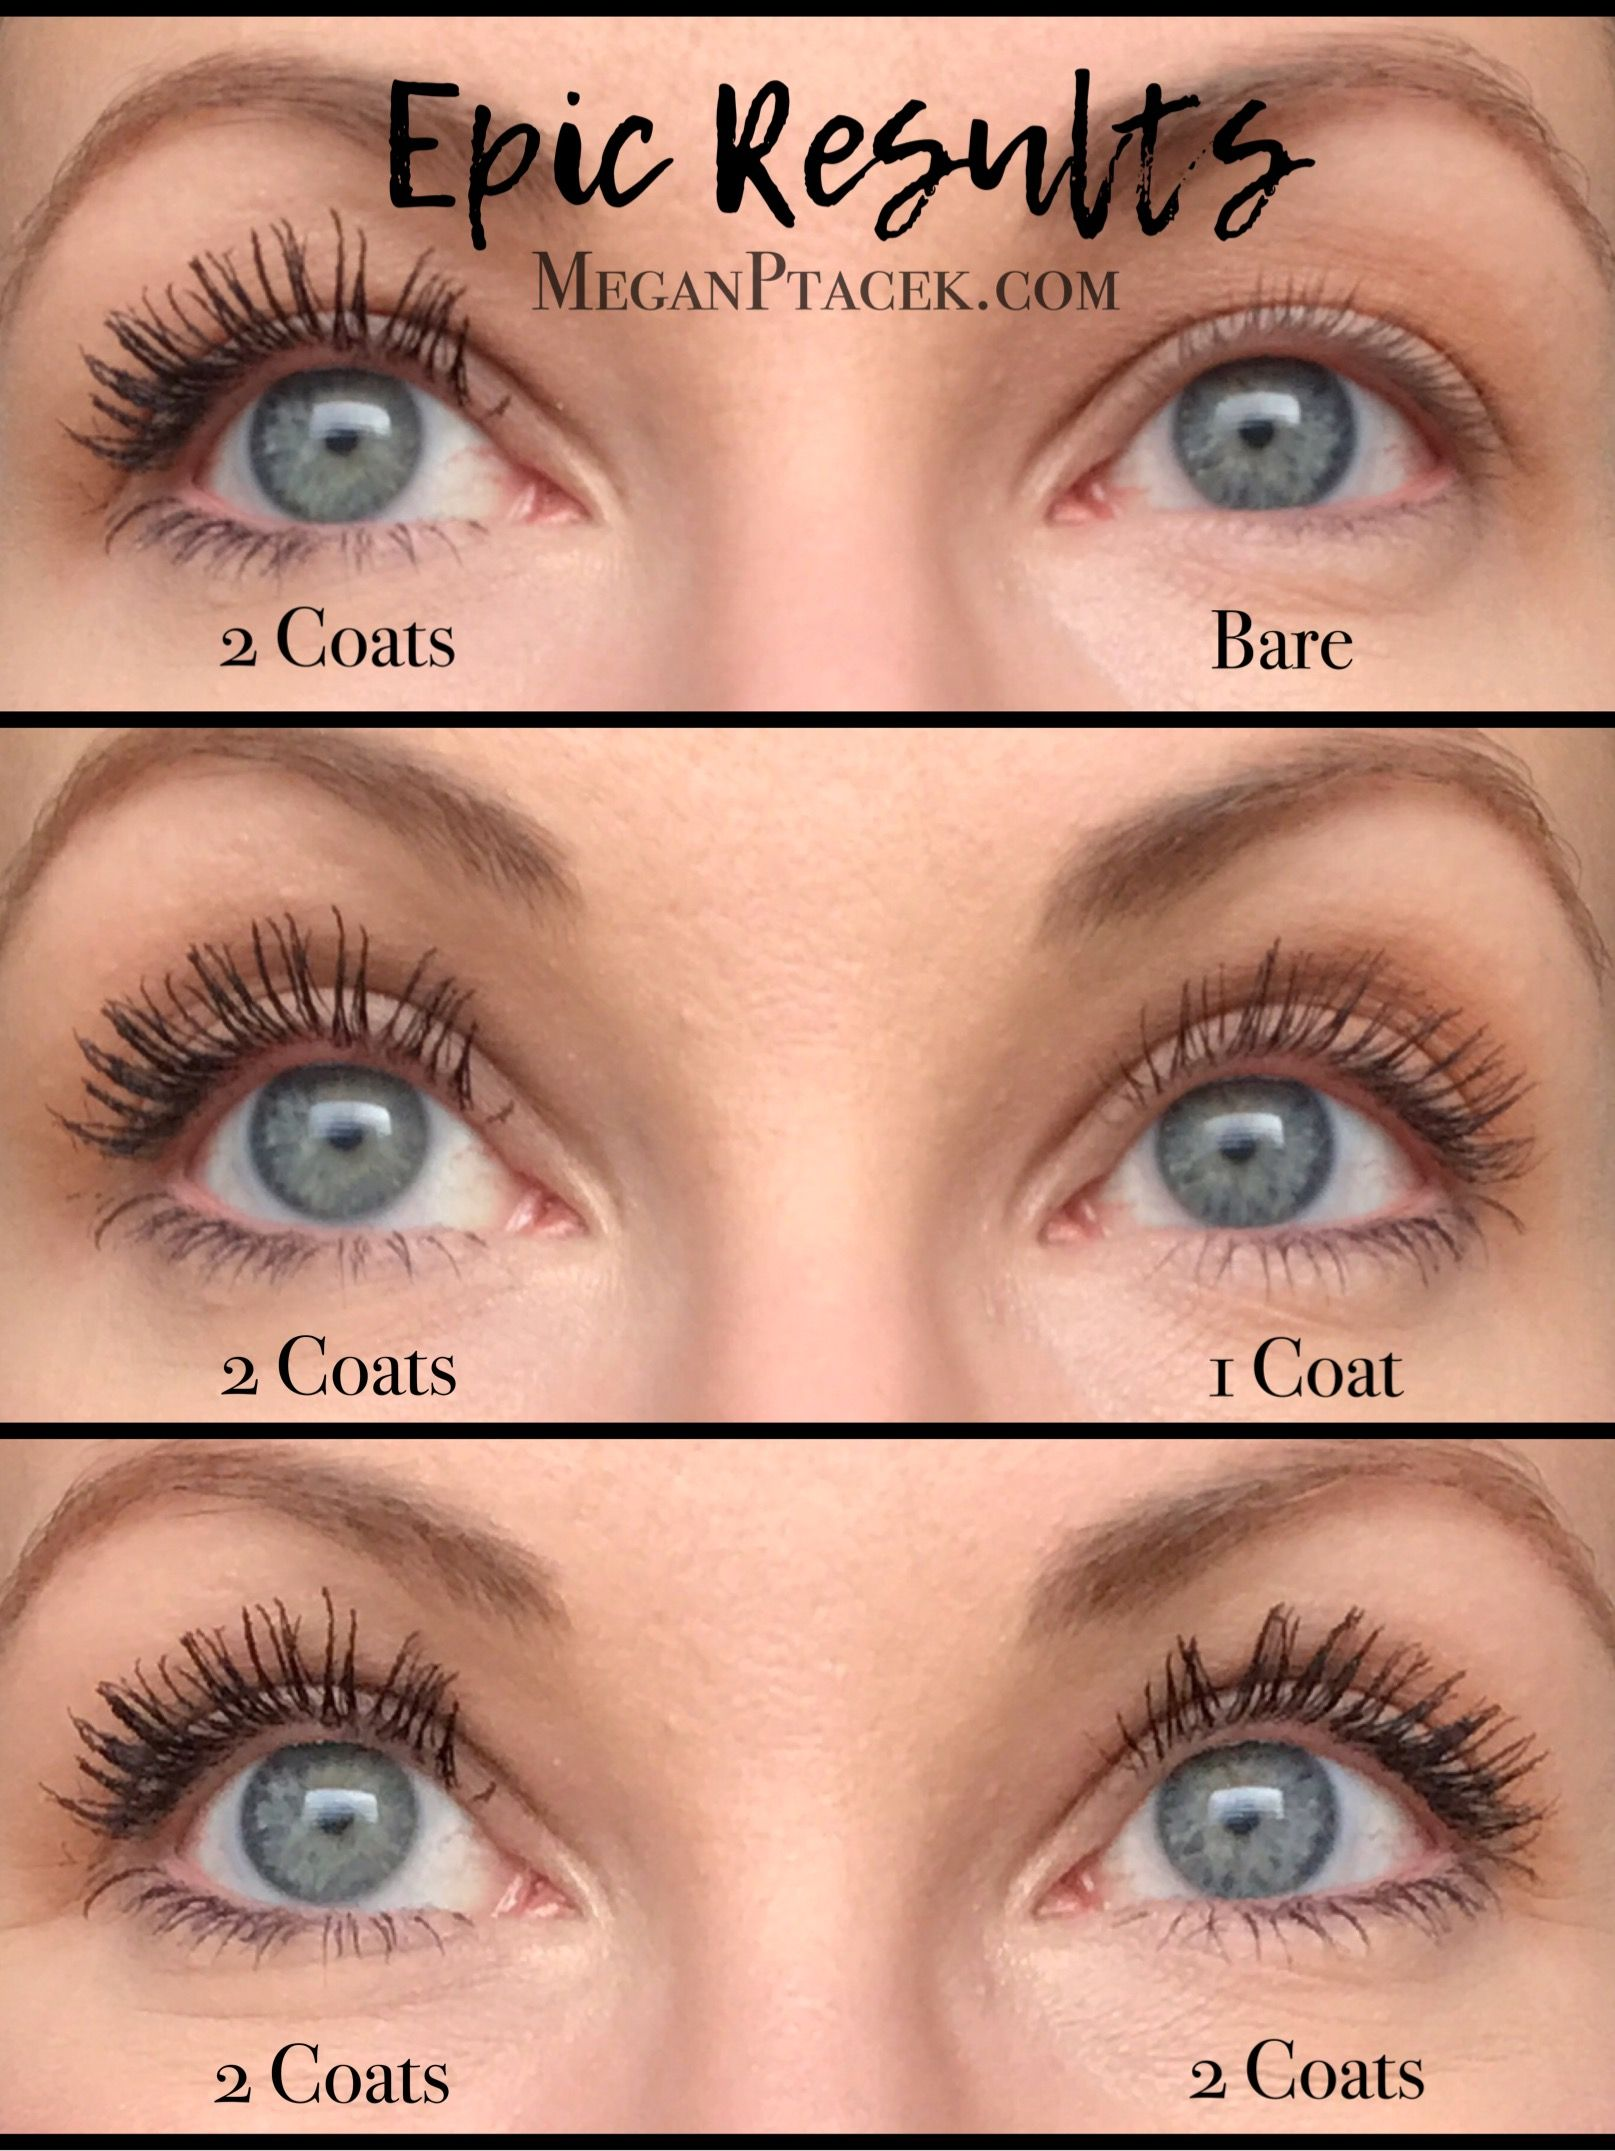 Younique Epic Mascara gives amazing results in one-step ...